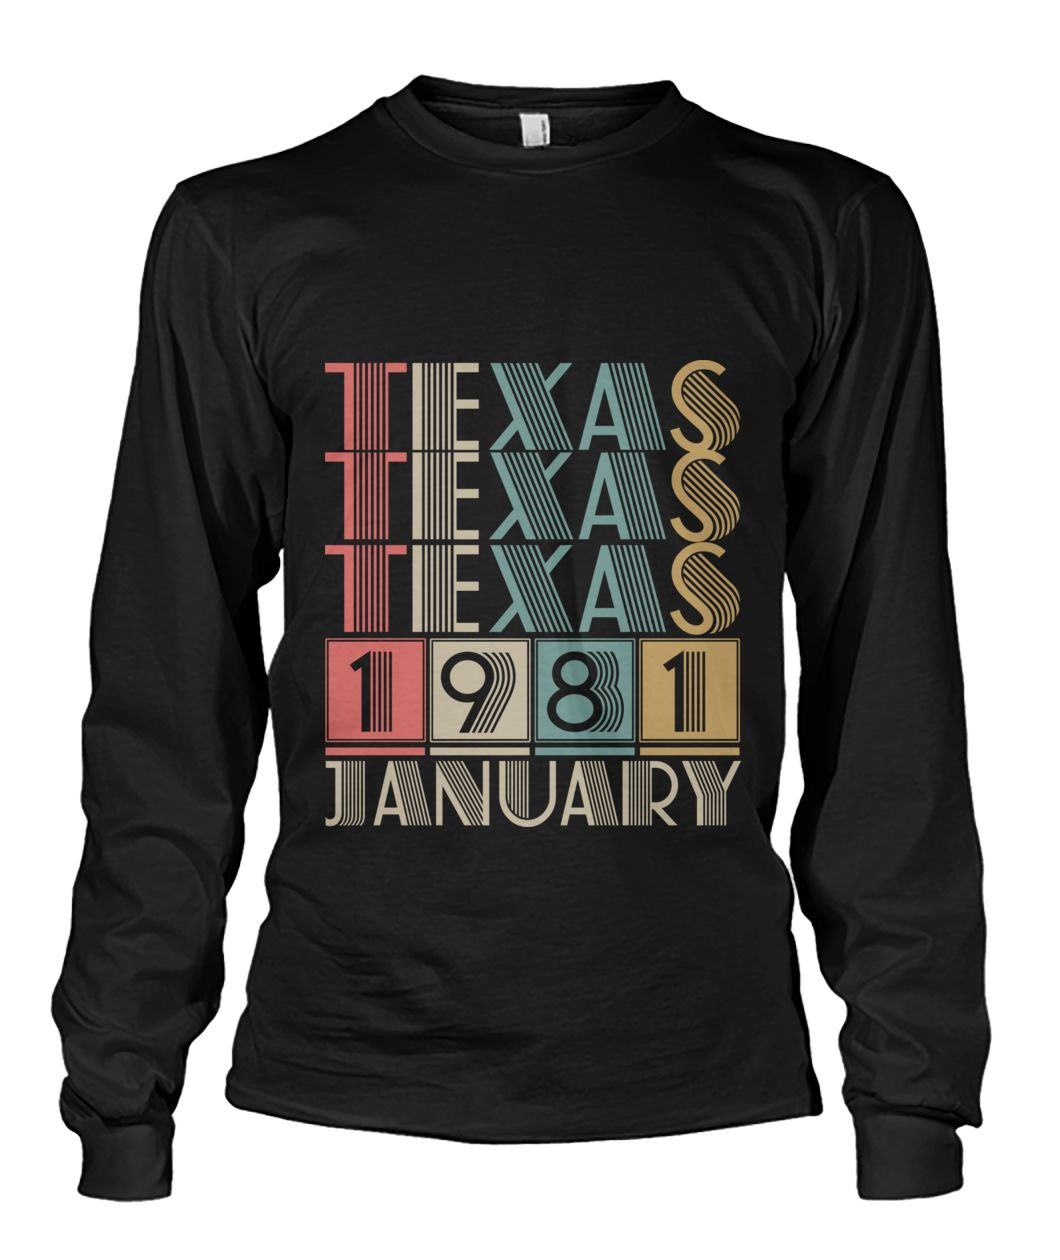 Born in Texas in January 1981 t shirt-Short Sleeves - TEEHOT.COM